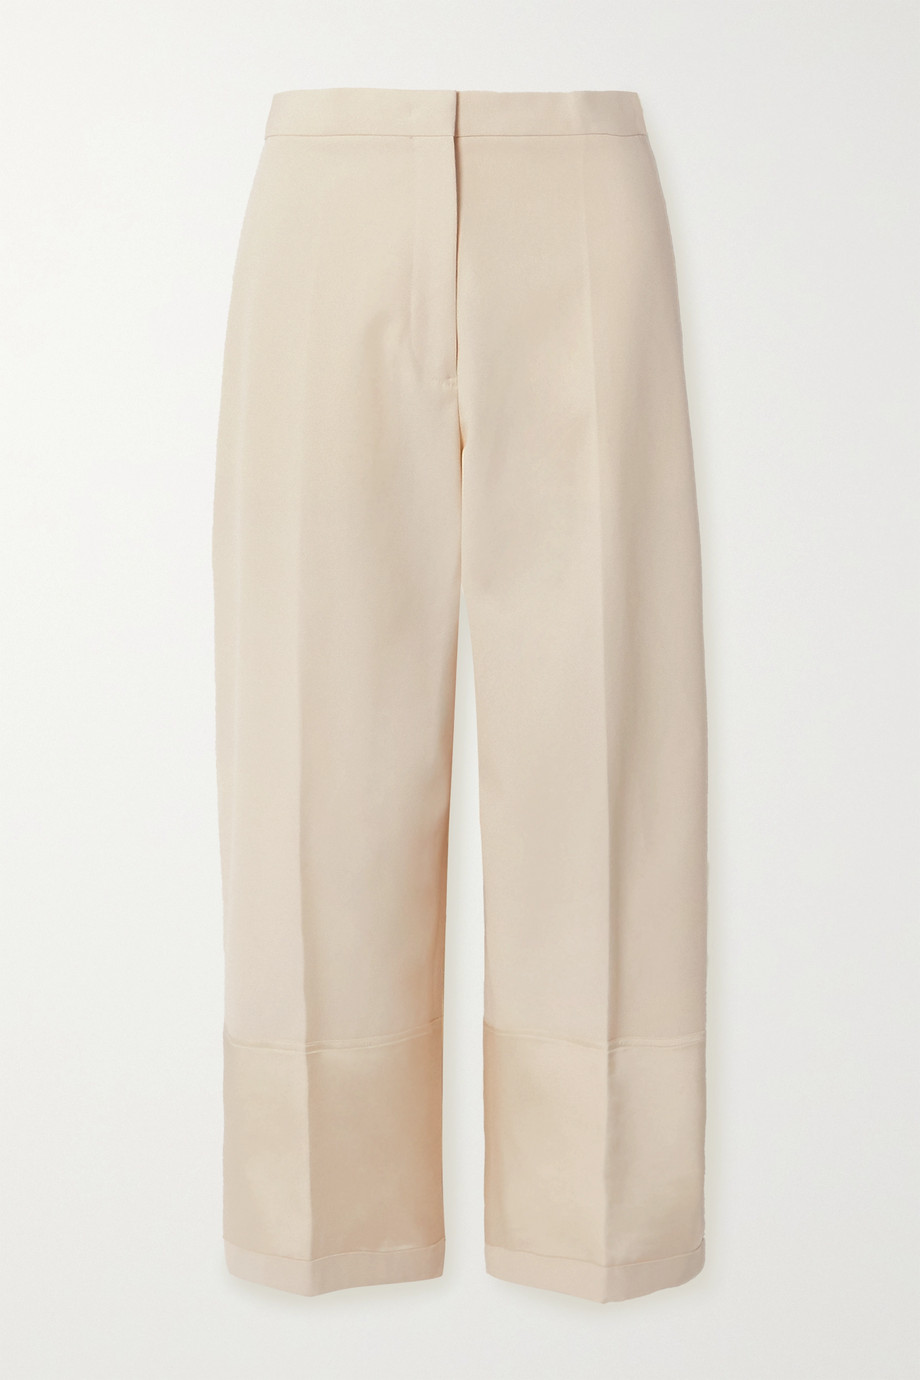 Jil Sander Pantalon large en toile de coton à finitions en satin